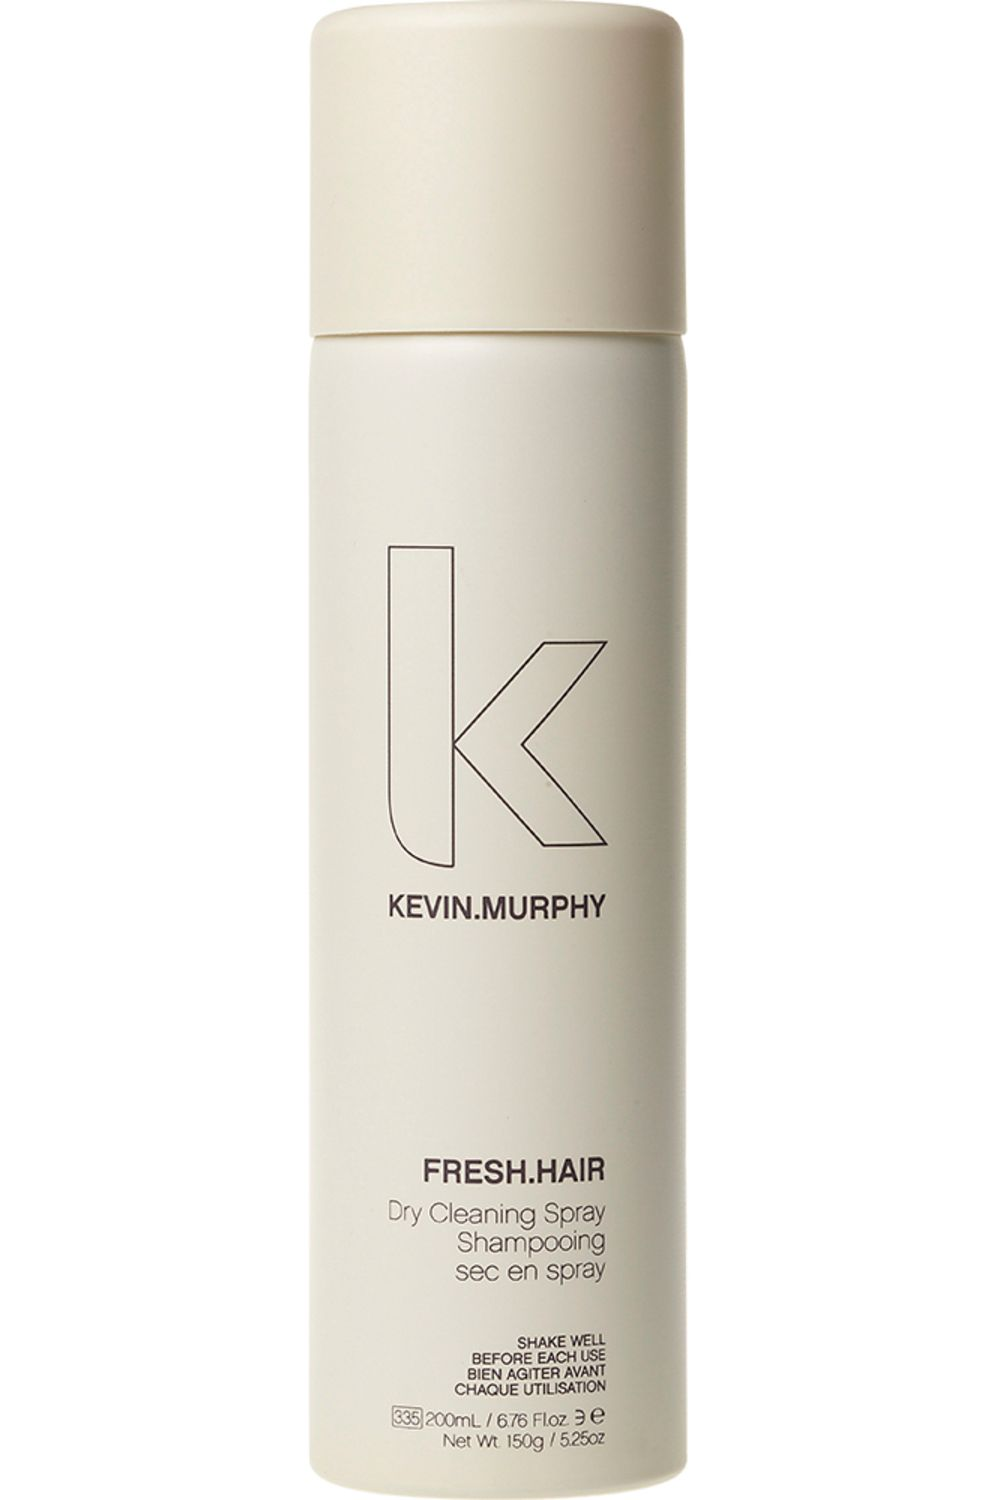 Blissim : KEVIN.MURPHY - Shampoing sec spray FRESH.HAIR - Shampoing sec spray FRESH.HAIR